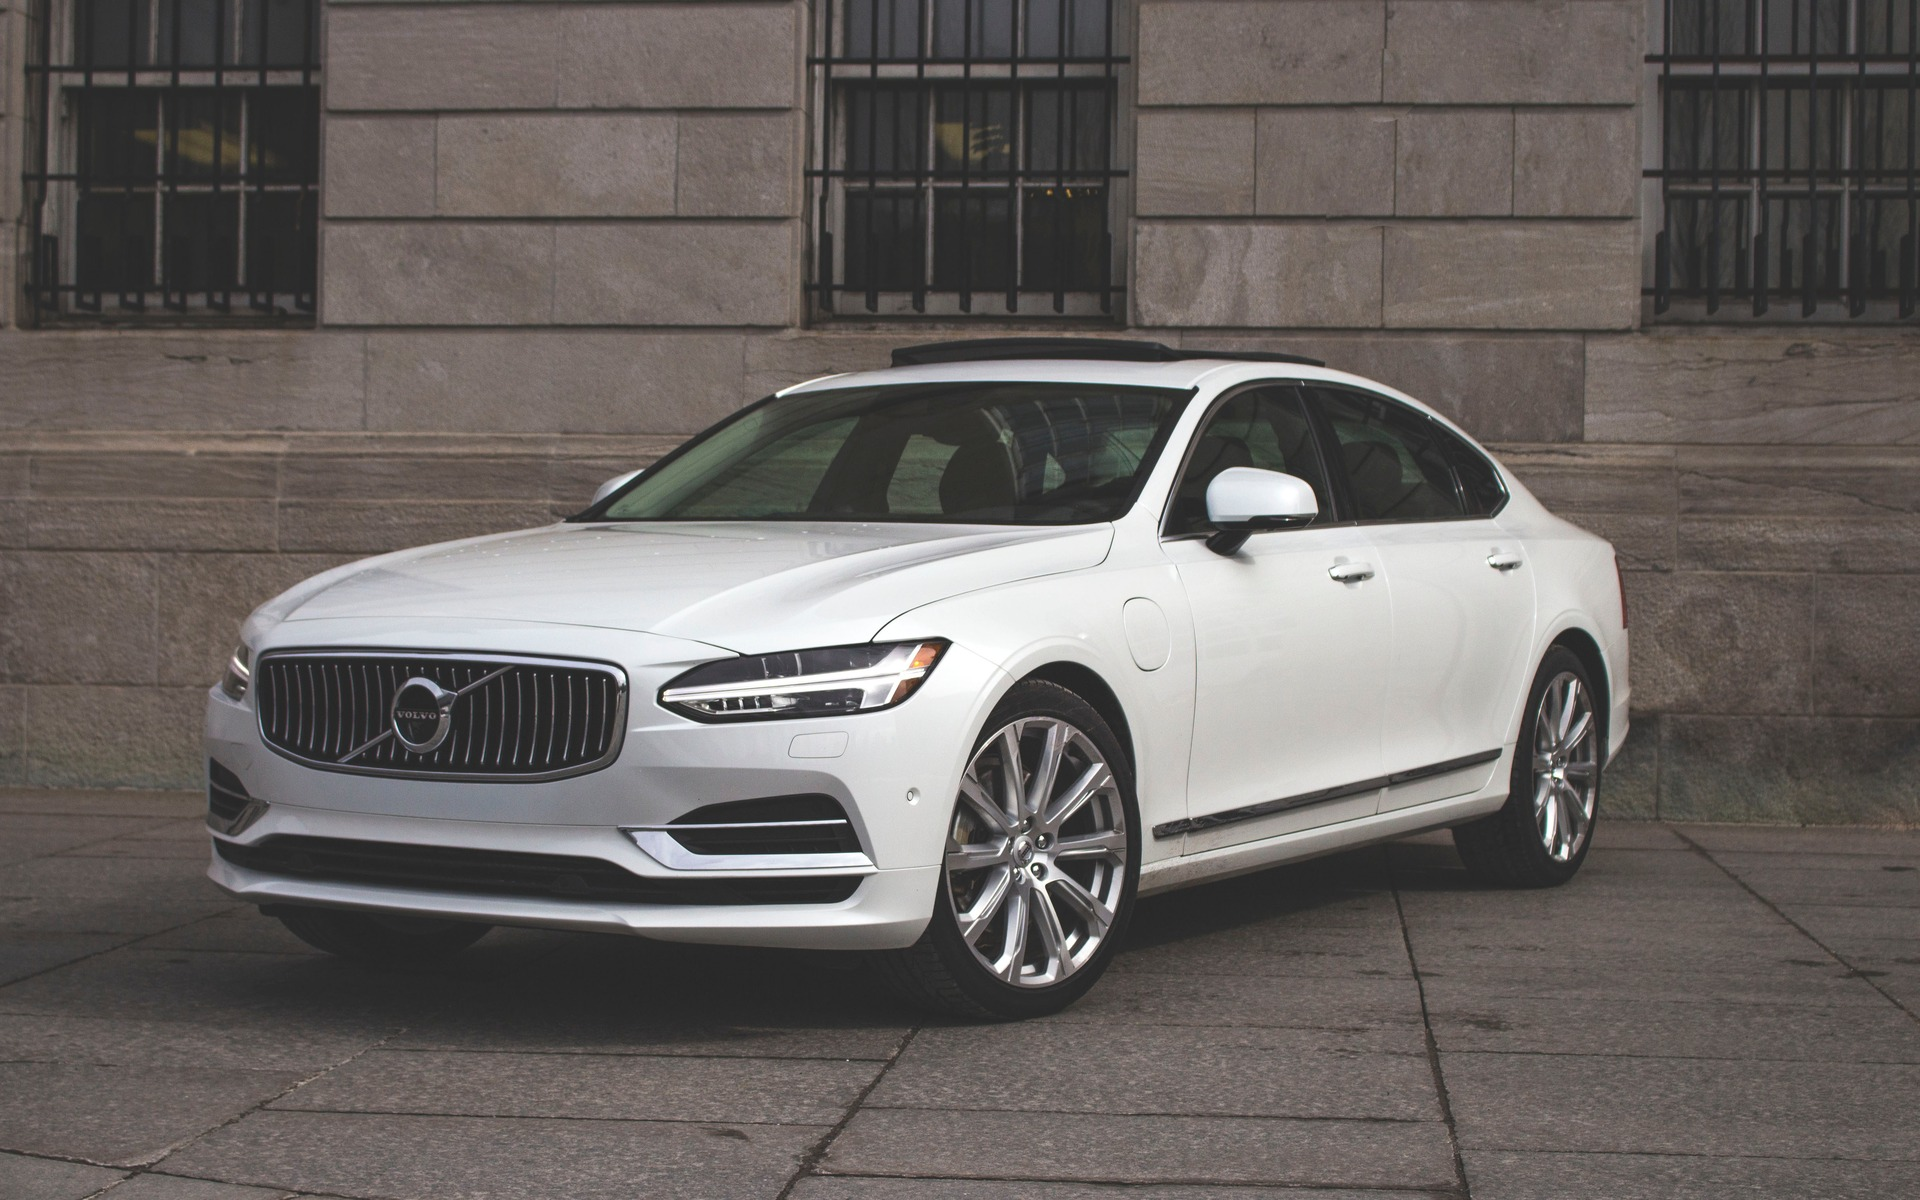 2018 Volvo S90 T8 Keeping The Quirkiness On Point The Car Guide